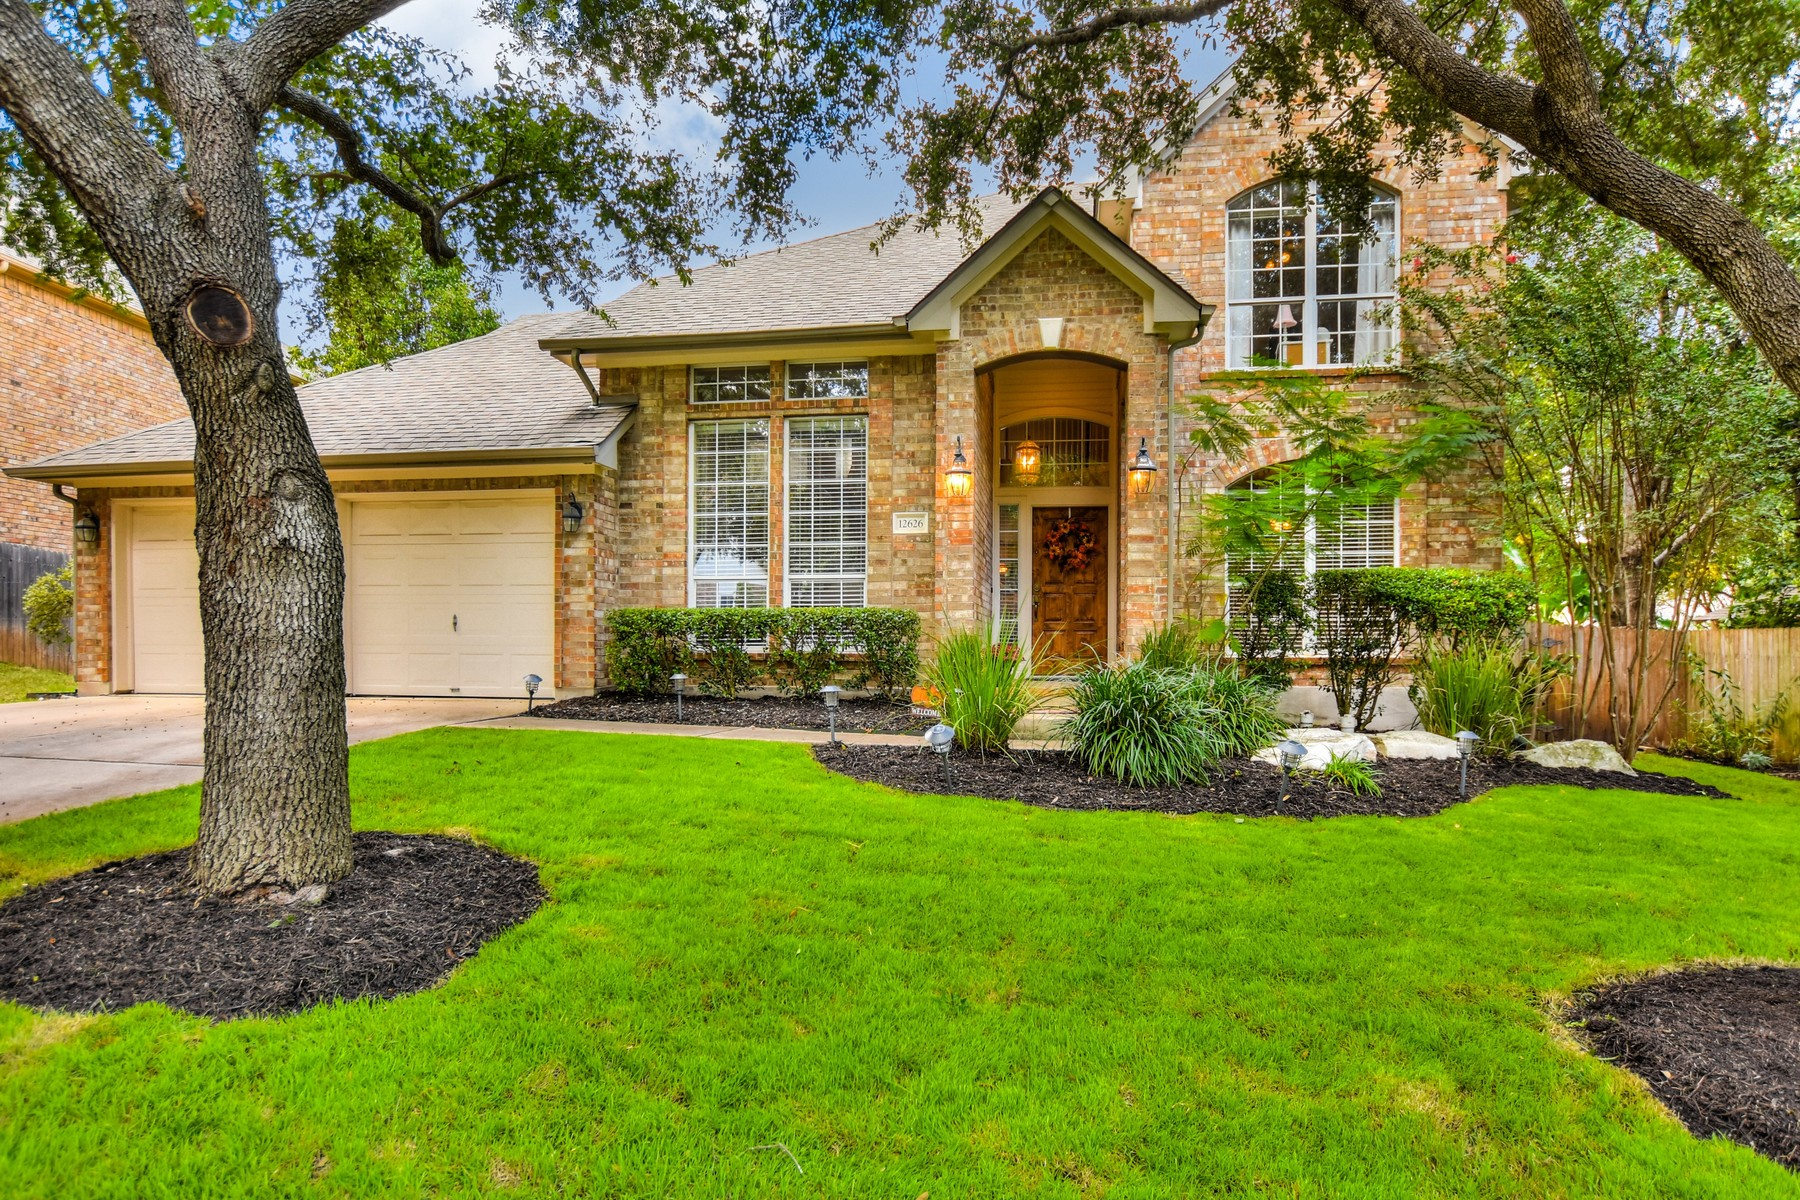 Single Family Home for Sale at An Oasis in Scofield Farms 12626 Pony Ln Austin, Texas 78727 United States